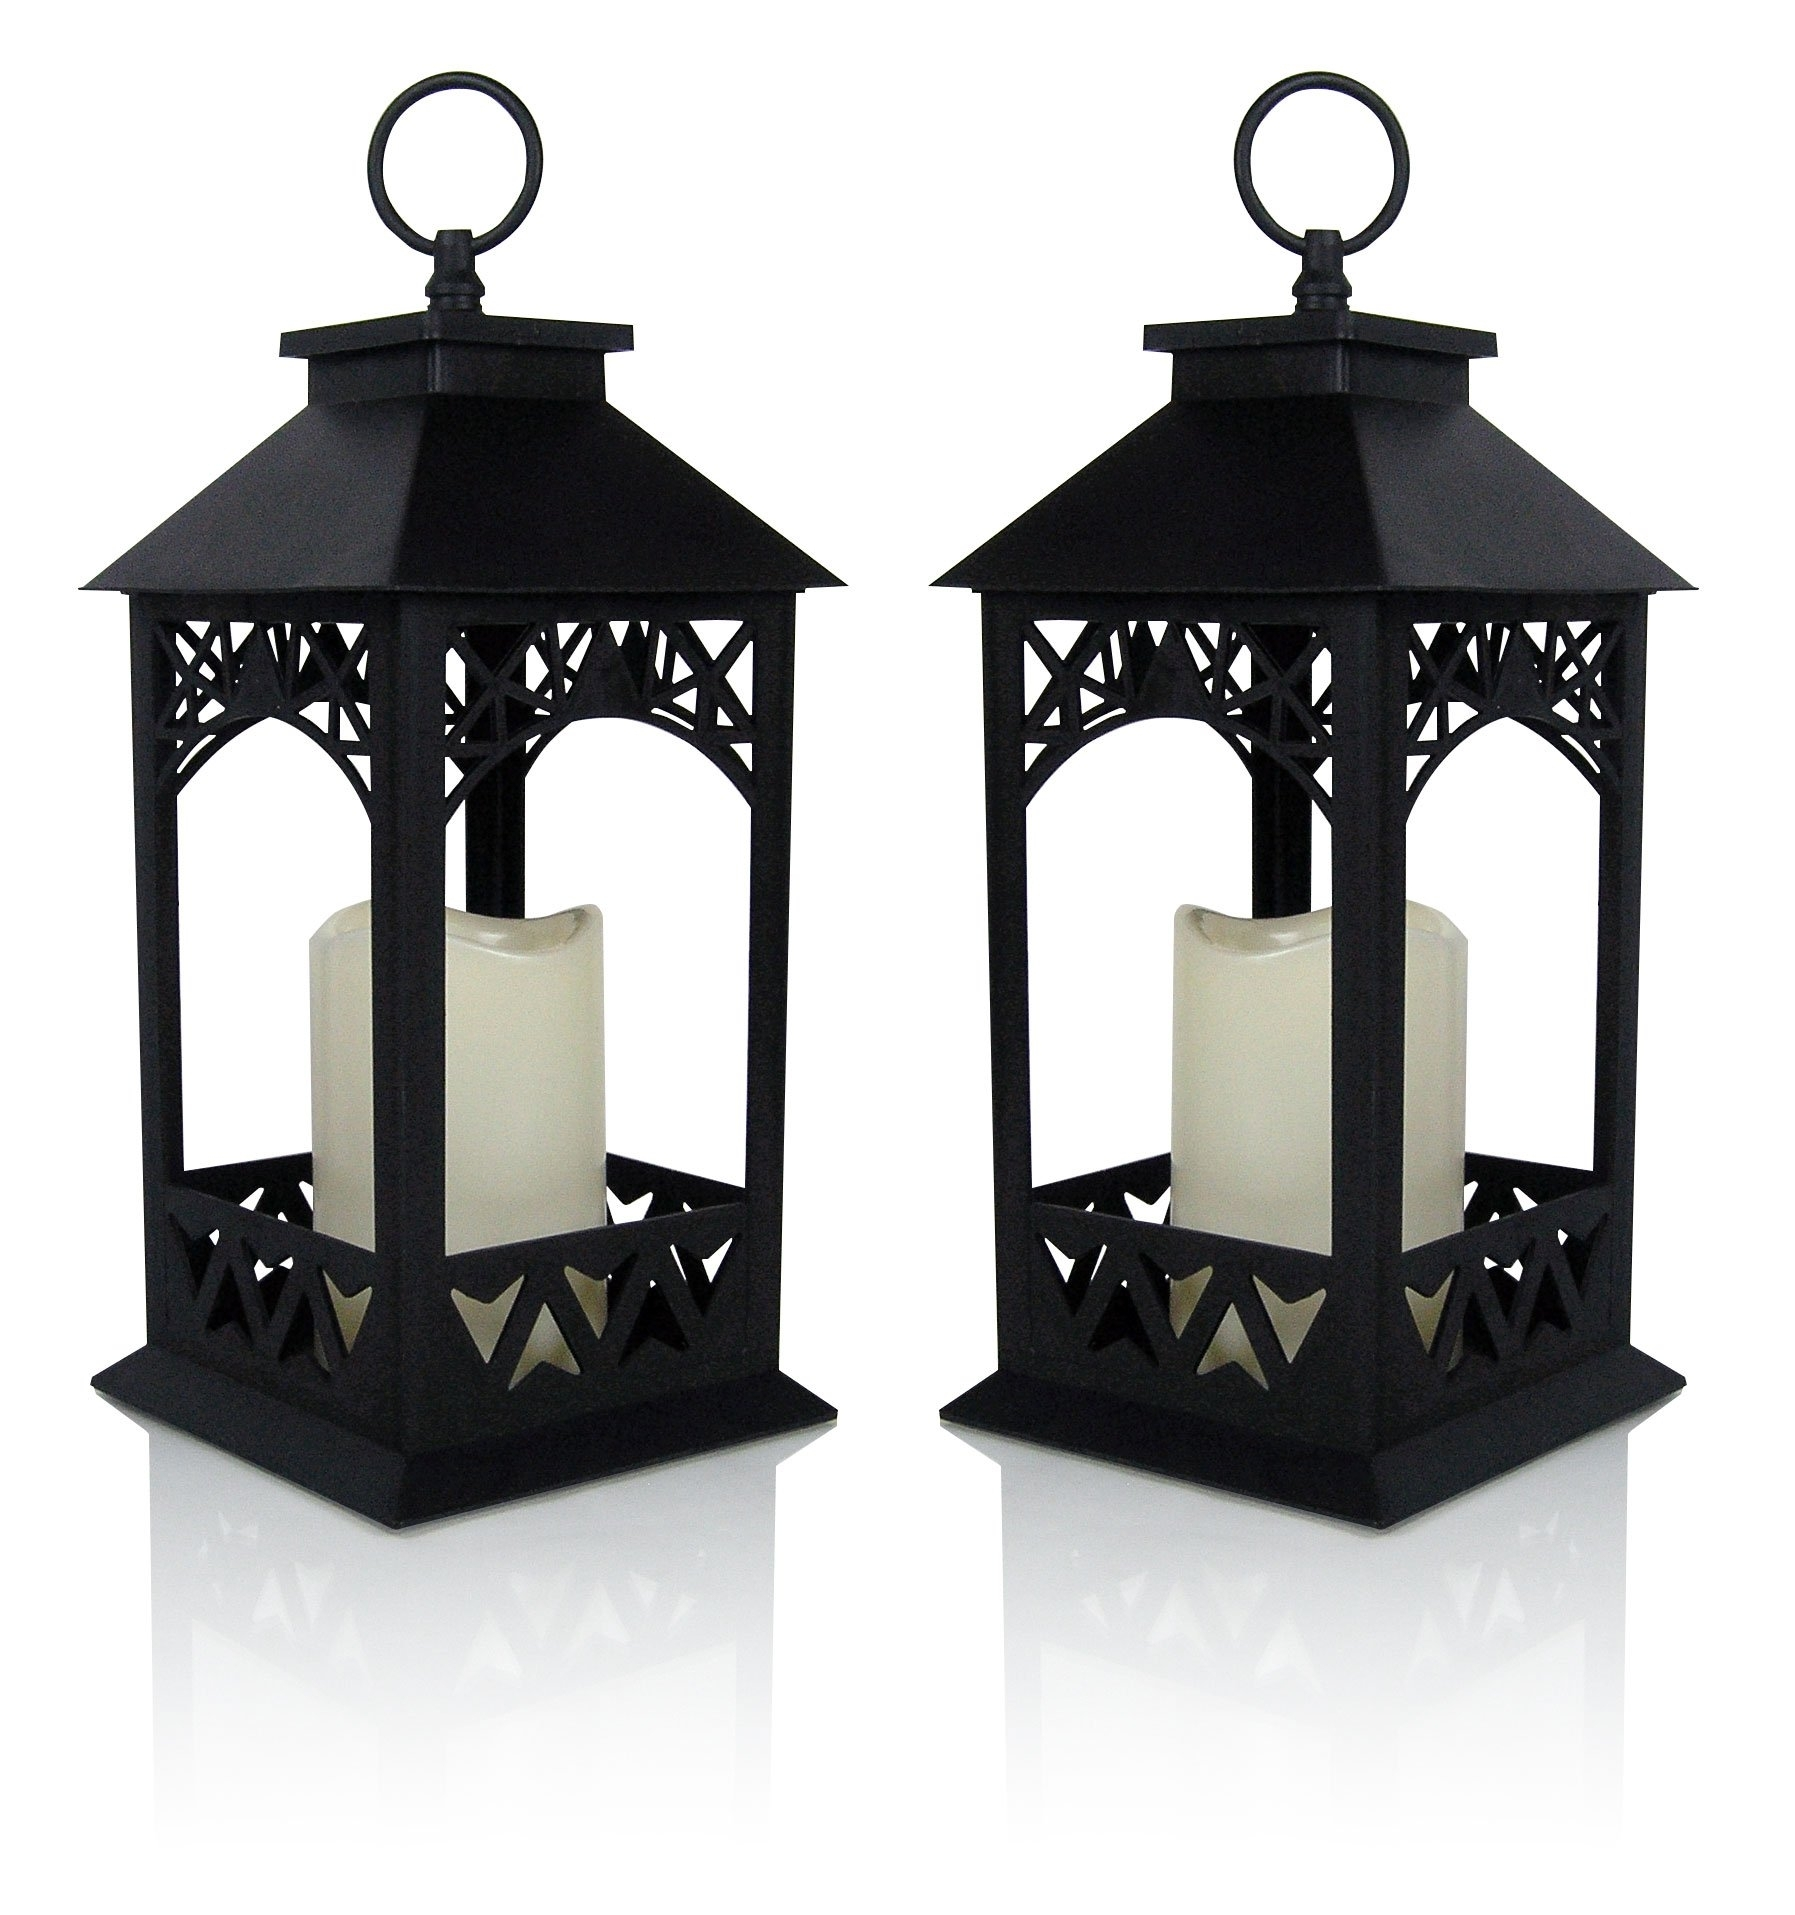 Cheap Outdoor Lanterns Candle, Find Outdoor Lanterns Candle Deals On pertaining to Outdoor Lanterns For Pillars (Image 3 of 20)